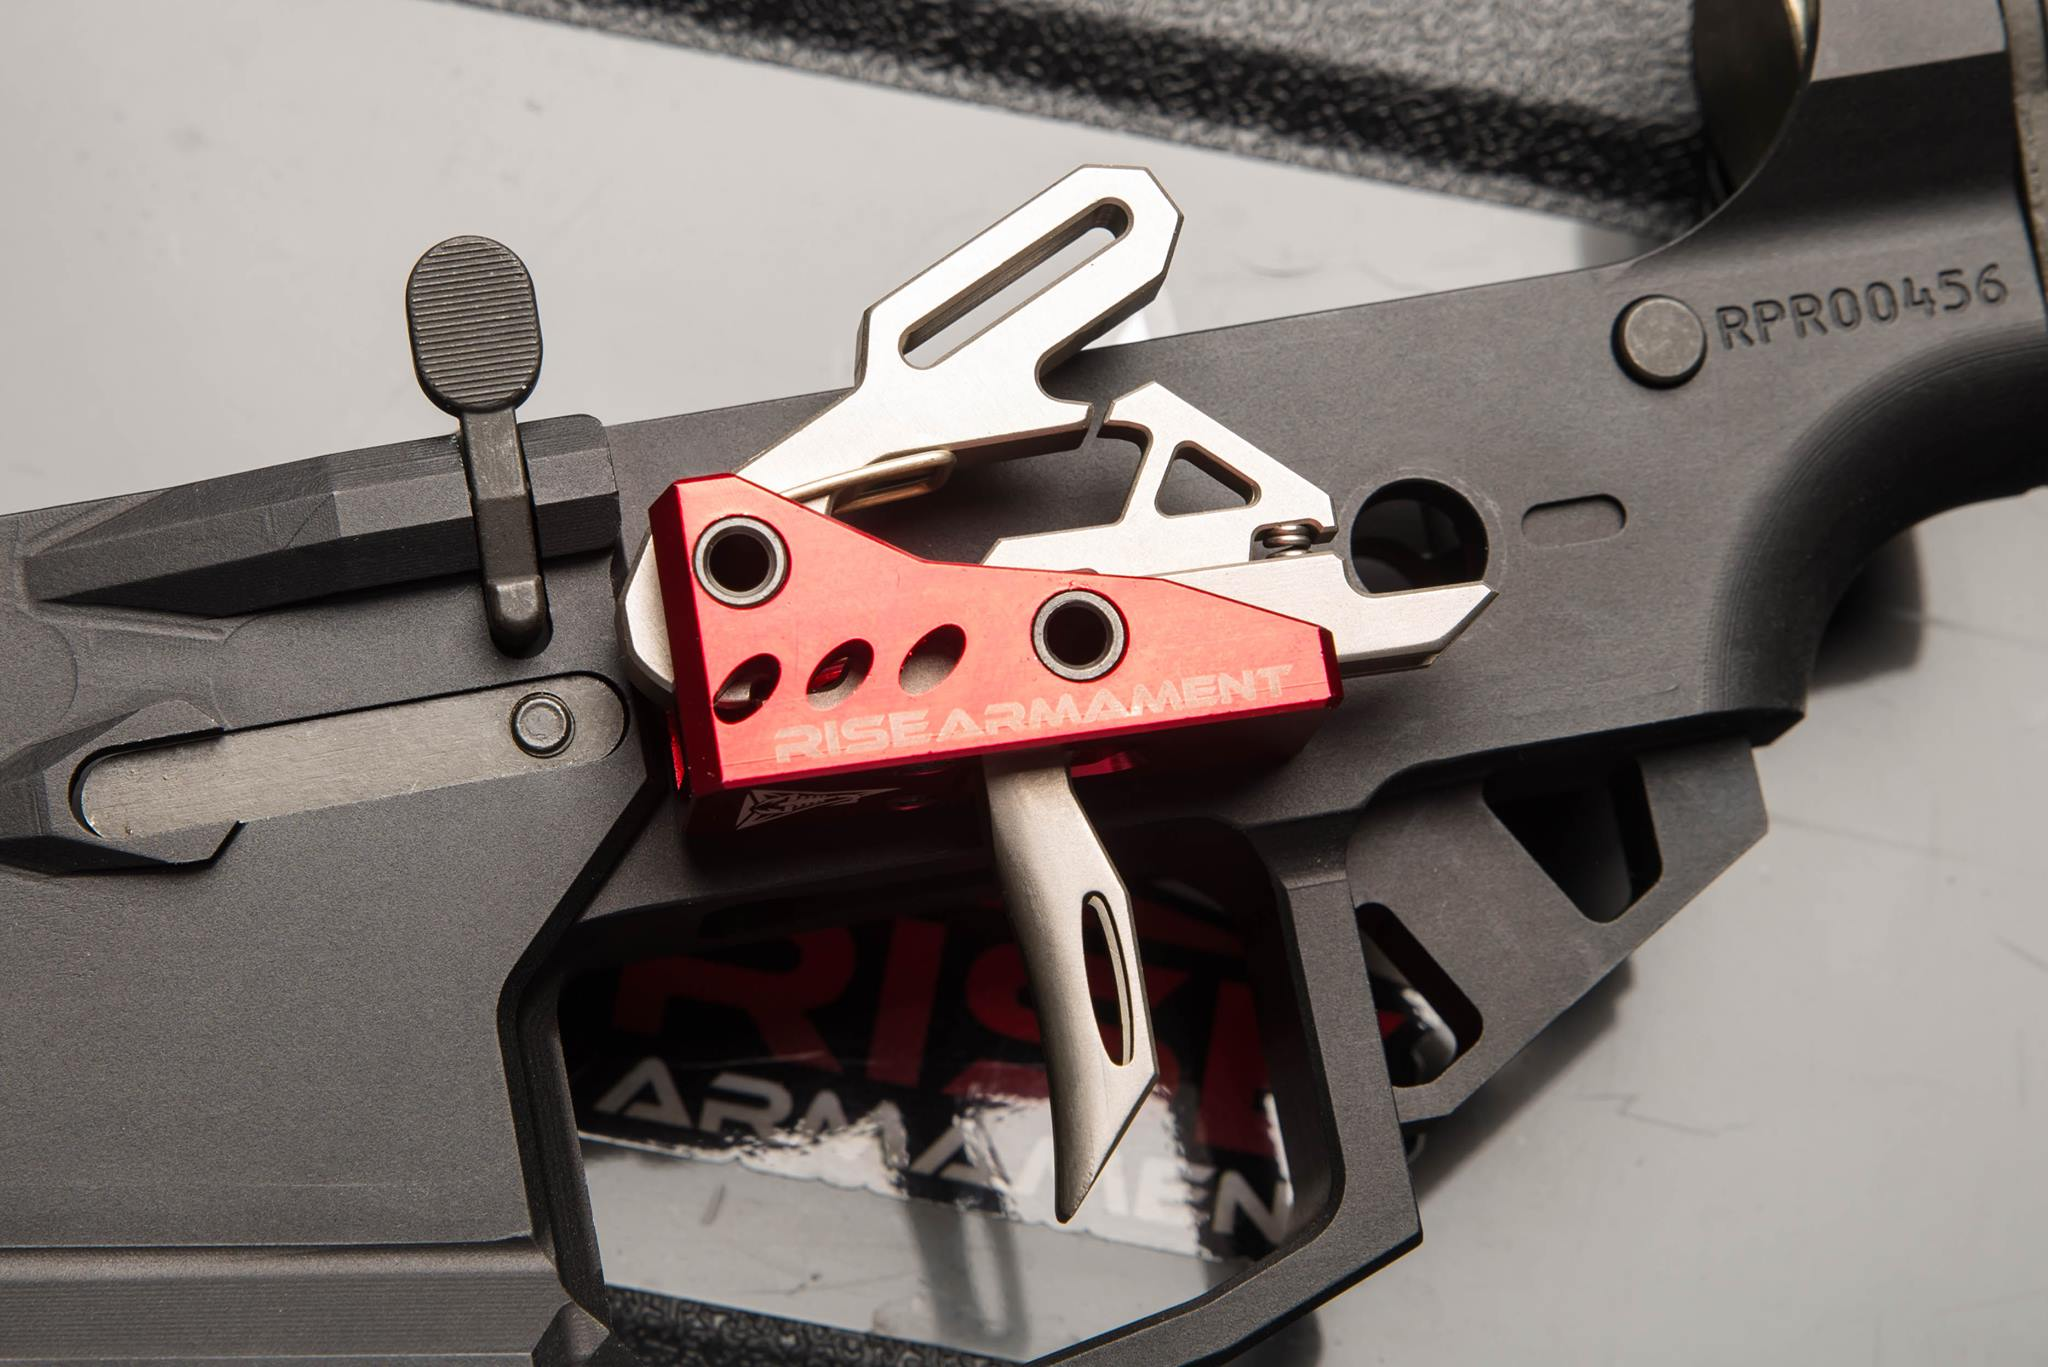 Rise Armament RA-535 Advanced Performance Trigger - MSRP $259.95